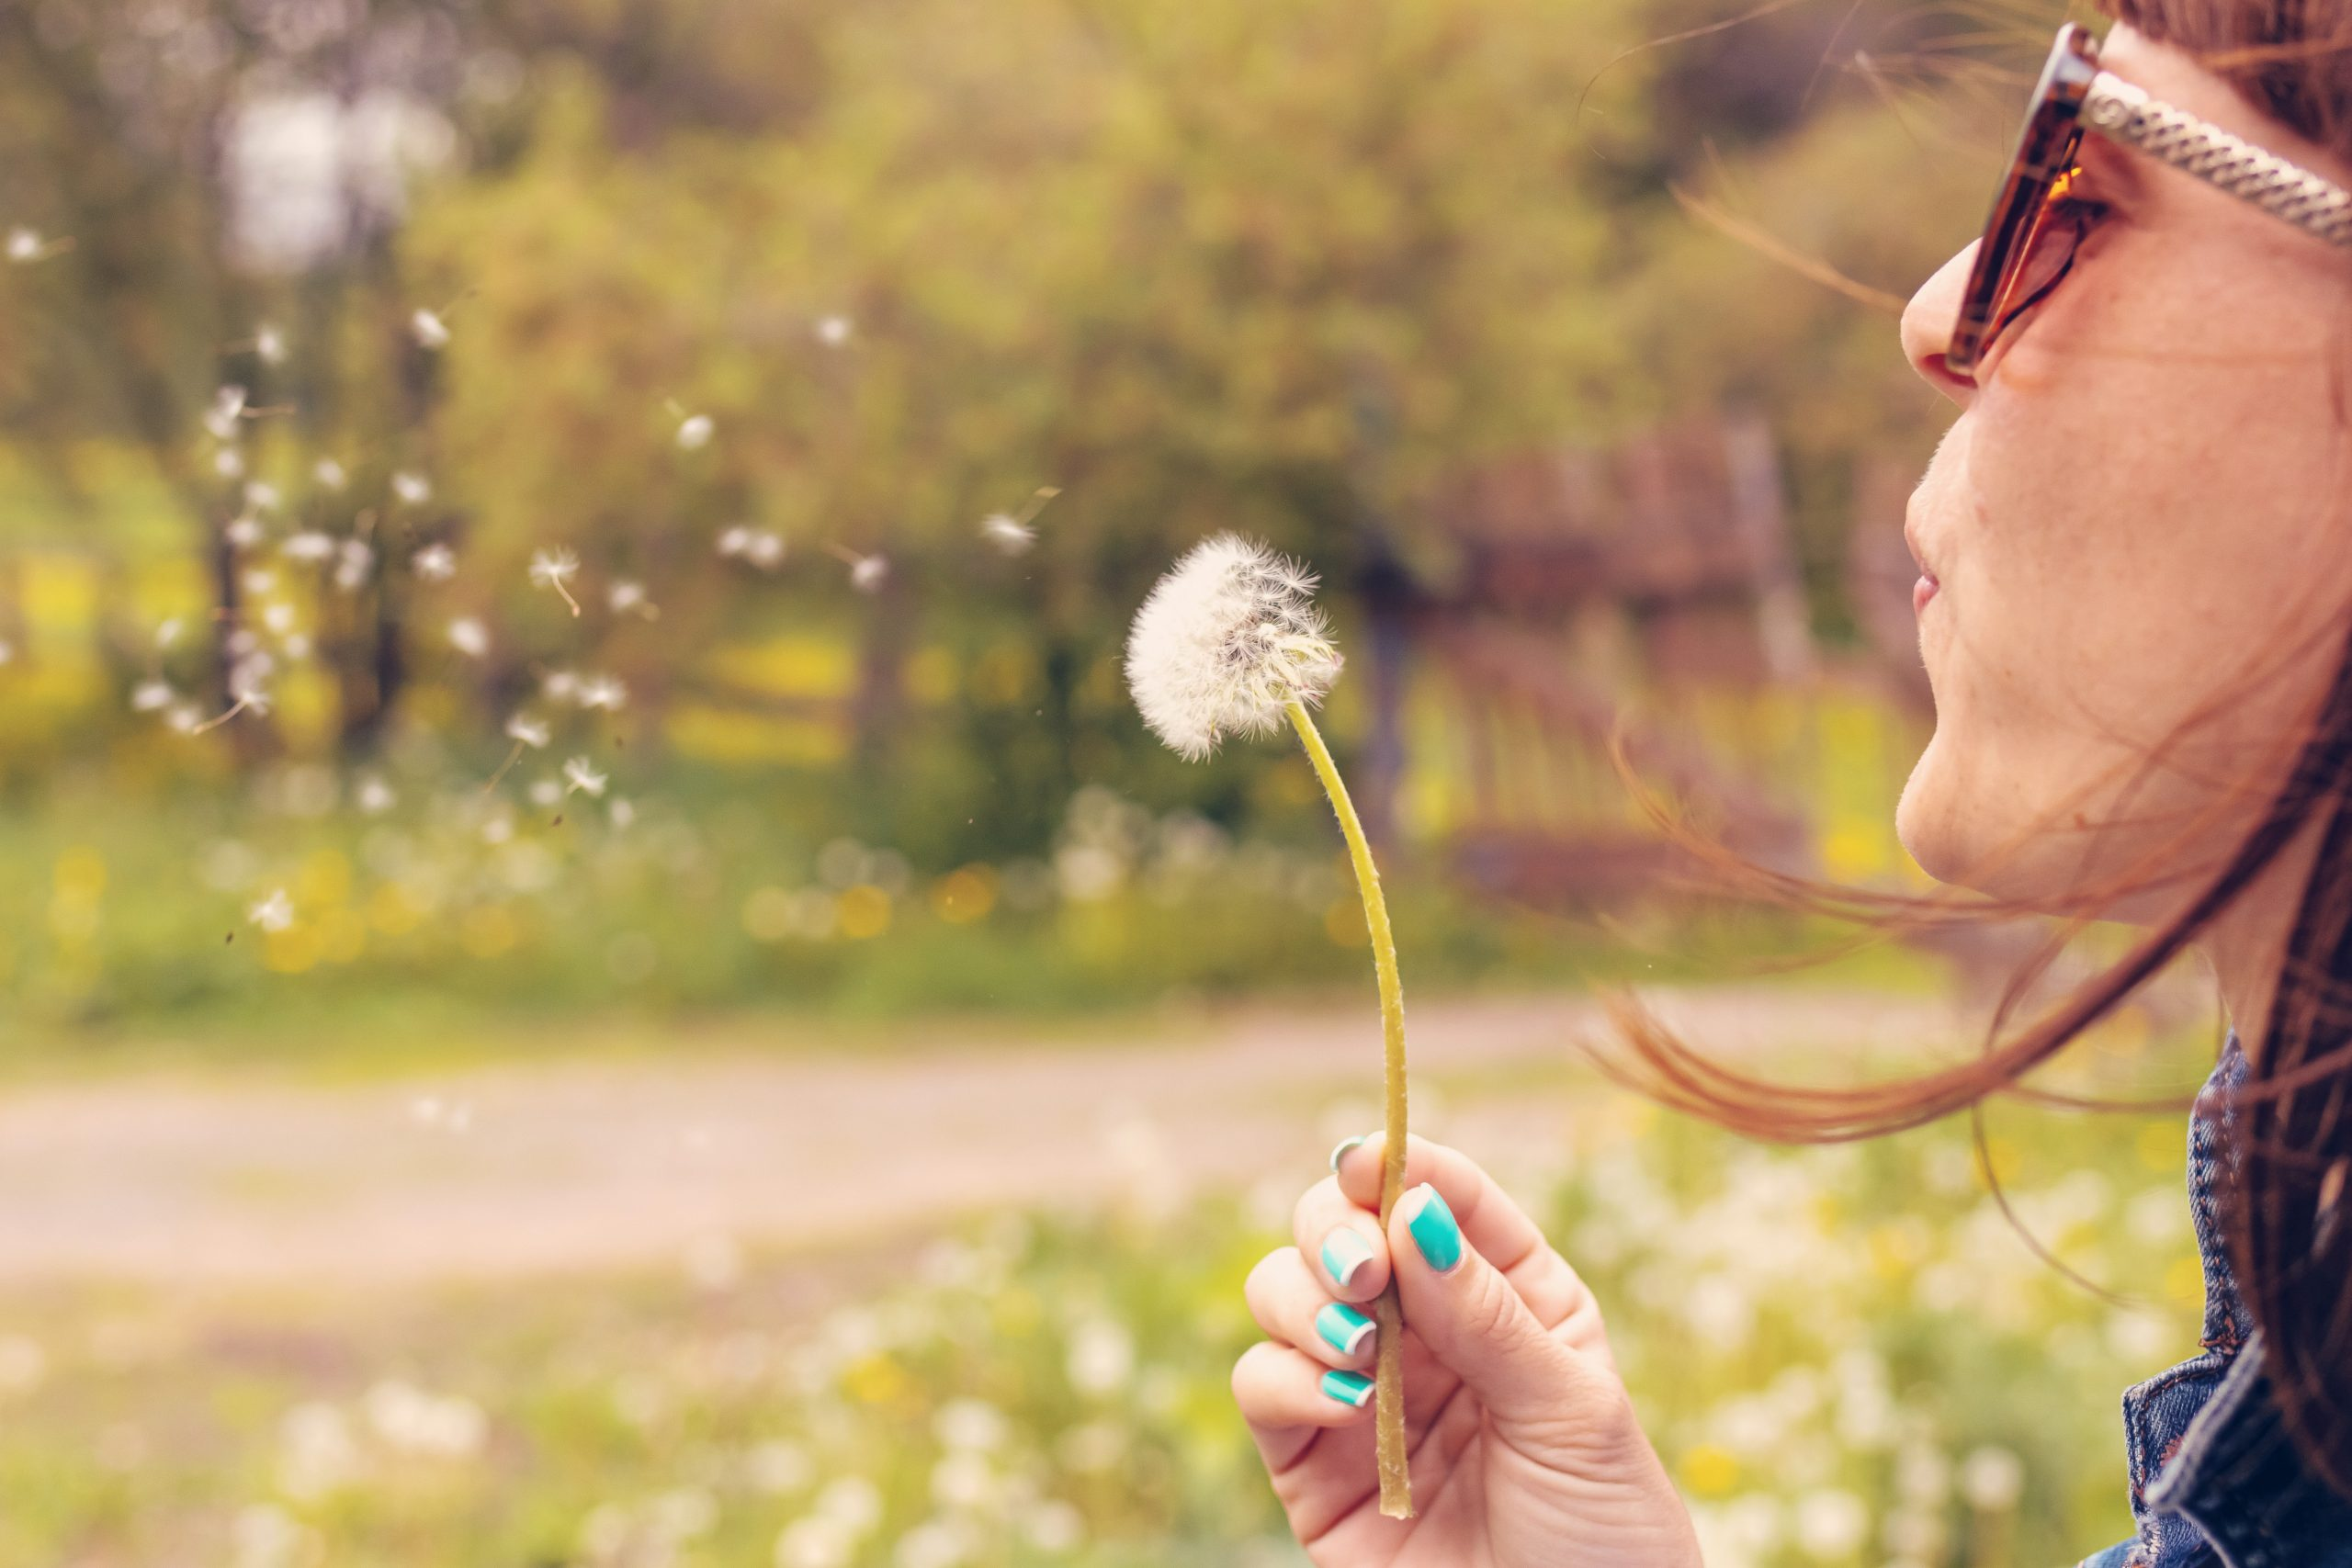 https://maskrosbarn.org/wp-content/uploads/2020/07/woman-with-dandelion-2383864-scaled.jpg